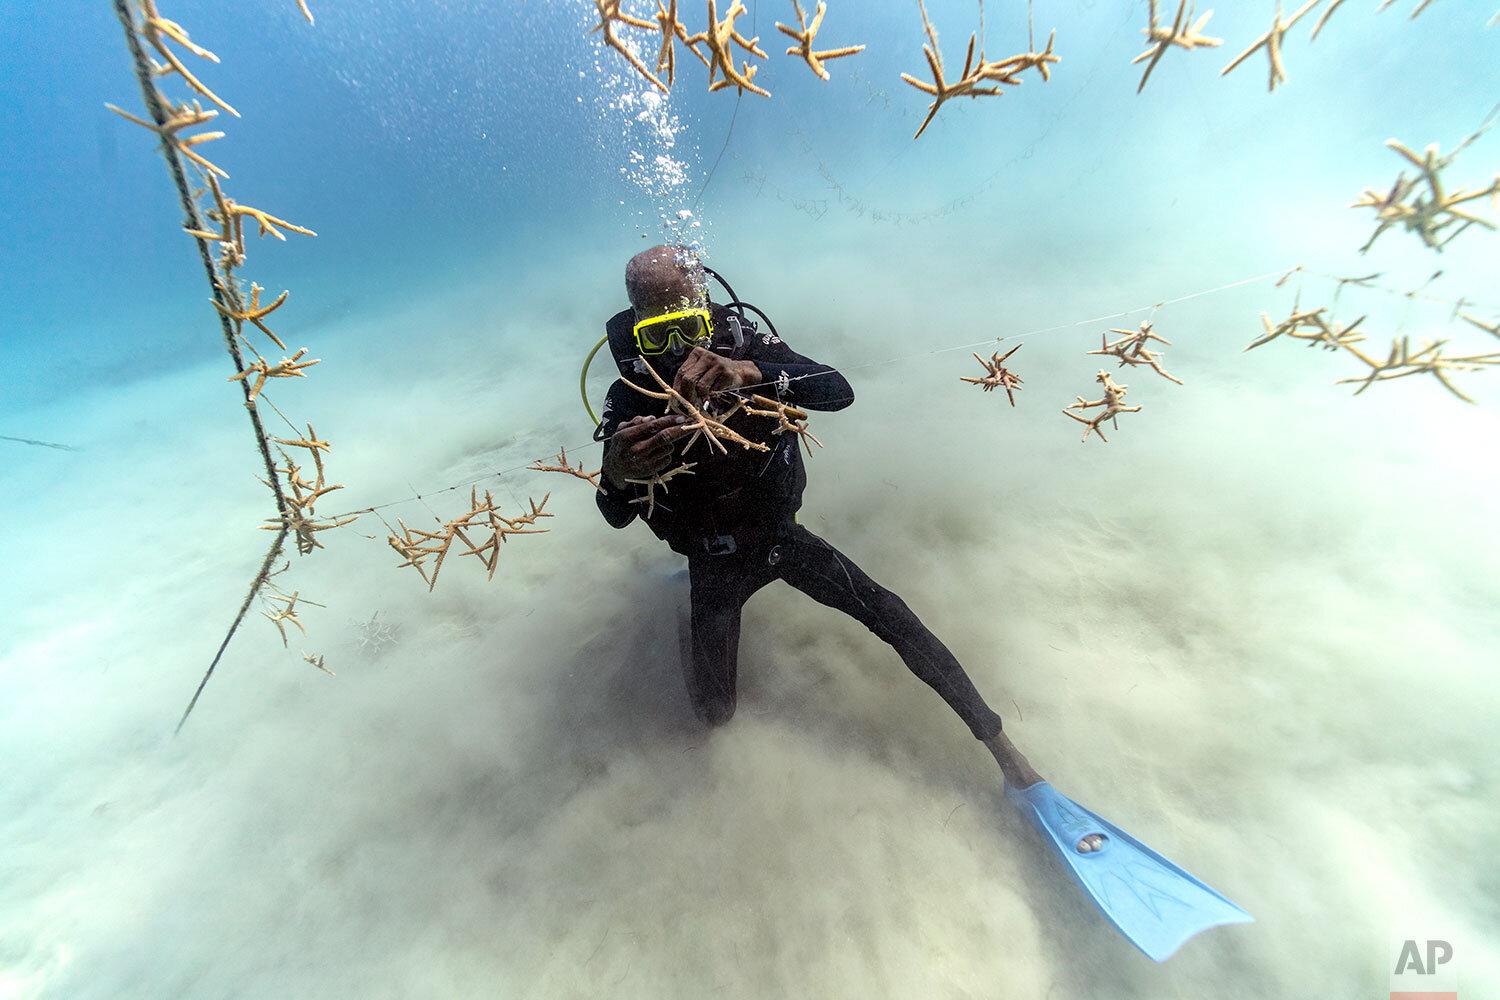 Diver Everton Simpson untangles lines of staghorn coral at a coral nursery inside the White River Fish Sanctuary Monday, Feb. 11, 2019, in Ocho Rios, Jamaica. On the ocean floor, small coral fragments dangle from suspended ropes, like socks hung on a laundry line. Divers tend to this underwater nursery as gardeners mind a flower bed _ slowly and painstakingly plucking off snails and fireworms that feast on immature coral. (AP Photo/David J. Phillip)